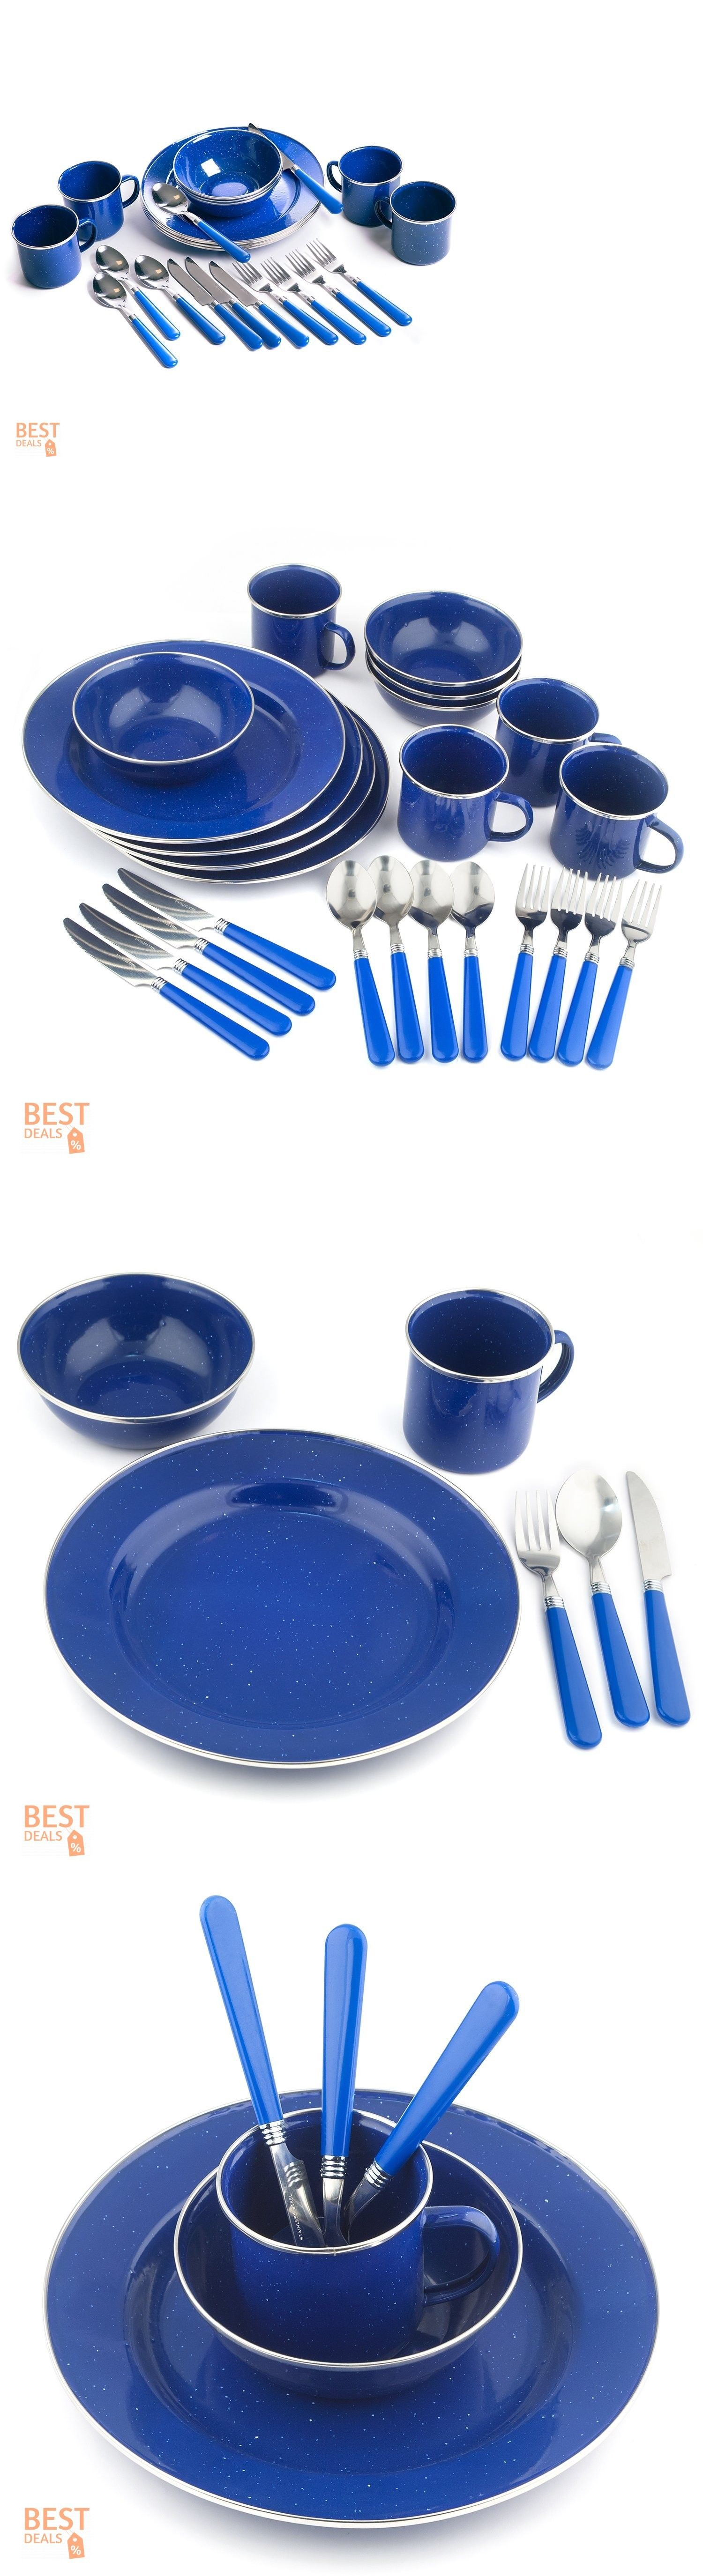 Outdoor Tableware 181383 Picnic Dinnerware Camping Cutlery Set Travel Dish Stainless Steel Enamel Combo